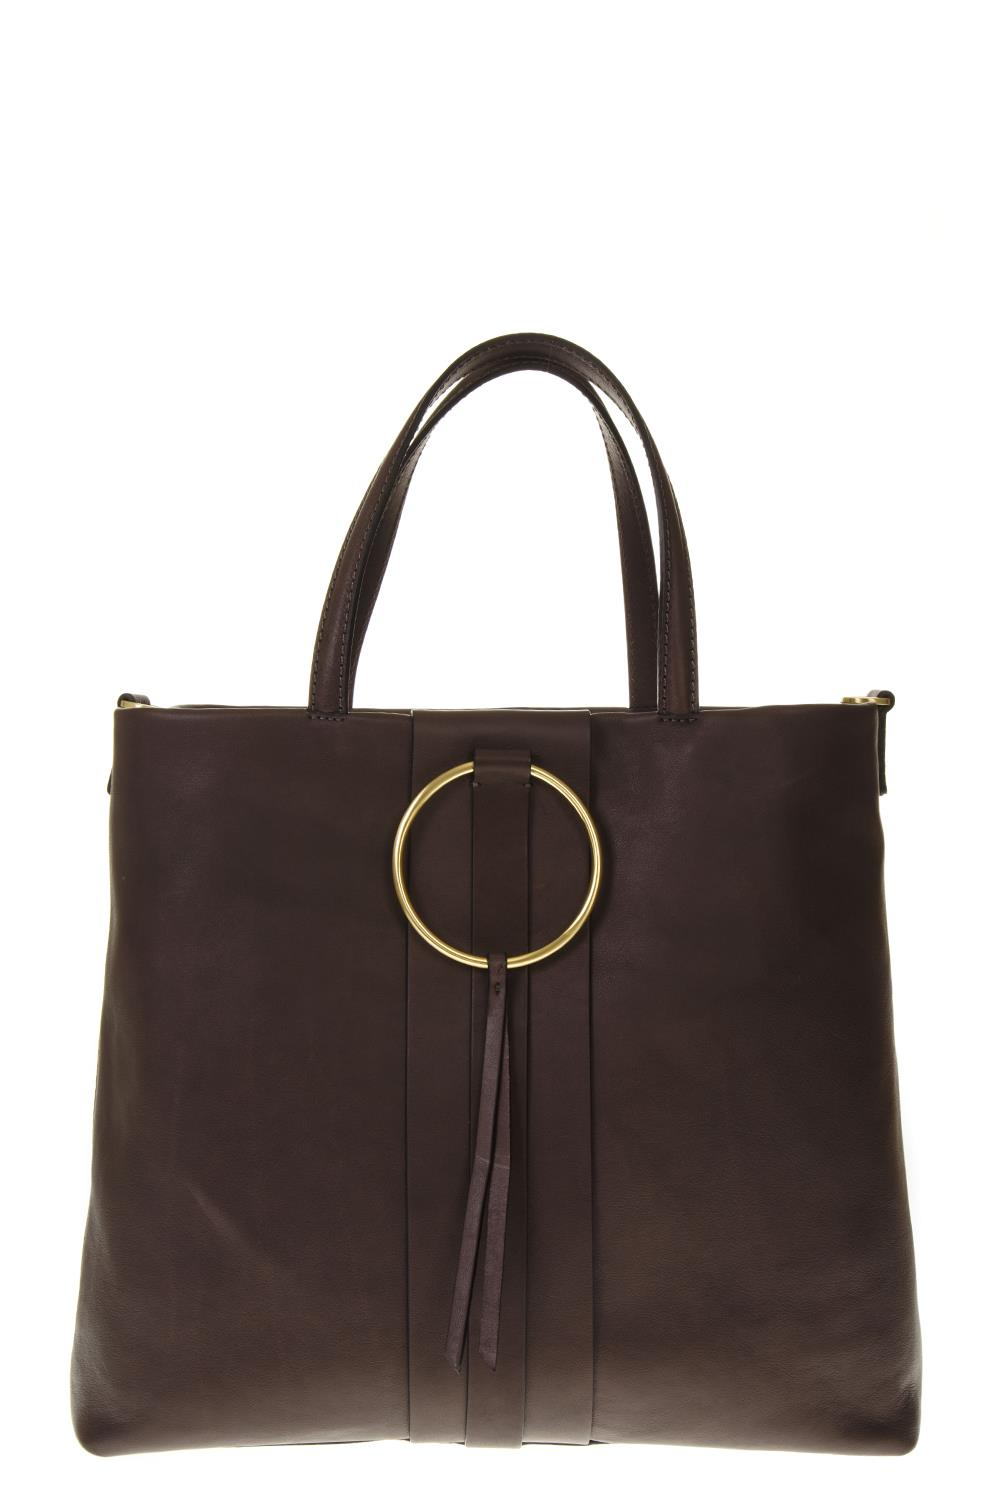 37b6becfac BROWN LEATHER TOTE BAG WITH METAL RING FW 2018 - GIANNI CHIARINI - Boutique  Galiano